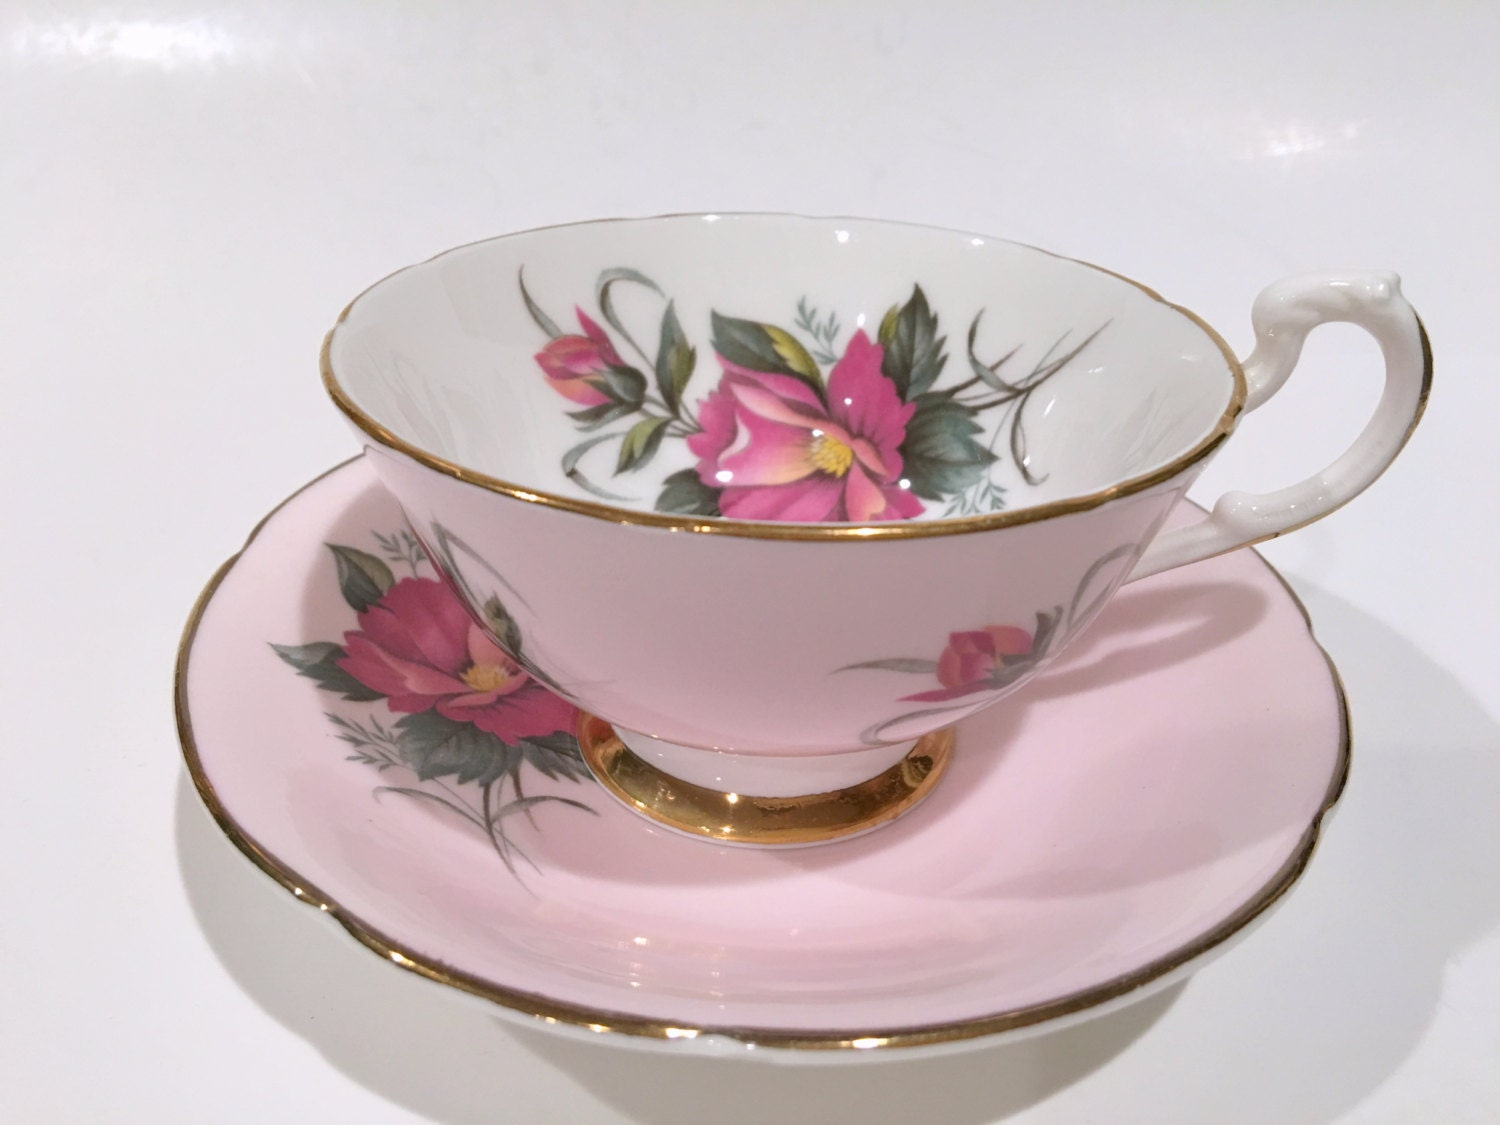 Product - Tea Cup Set 12 Piece Cup & Saucer Set Glass Tea Party Microwave Safe Coffee or Espresso. Product Image. Price $ Product Title. Product - Service for 6 Pink & Grey Striped Flower Medallions Porcelain Cup & Saucer Set. Product Image. Price $ Product Title.